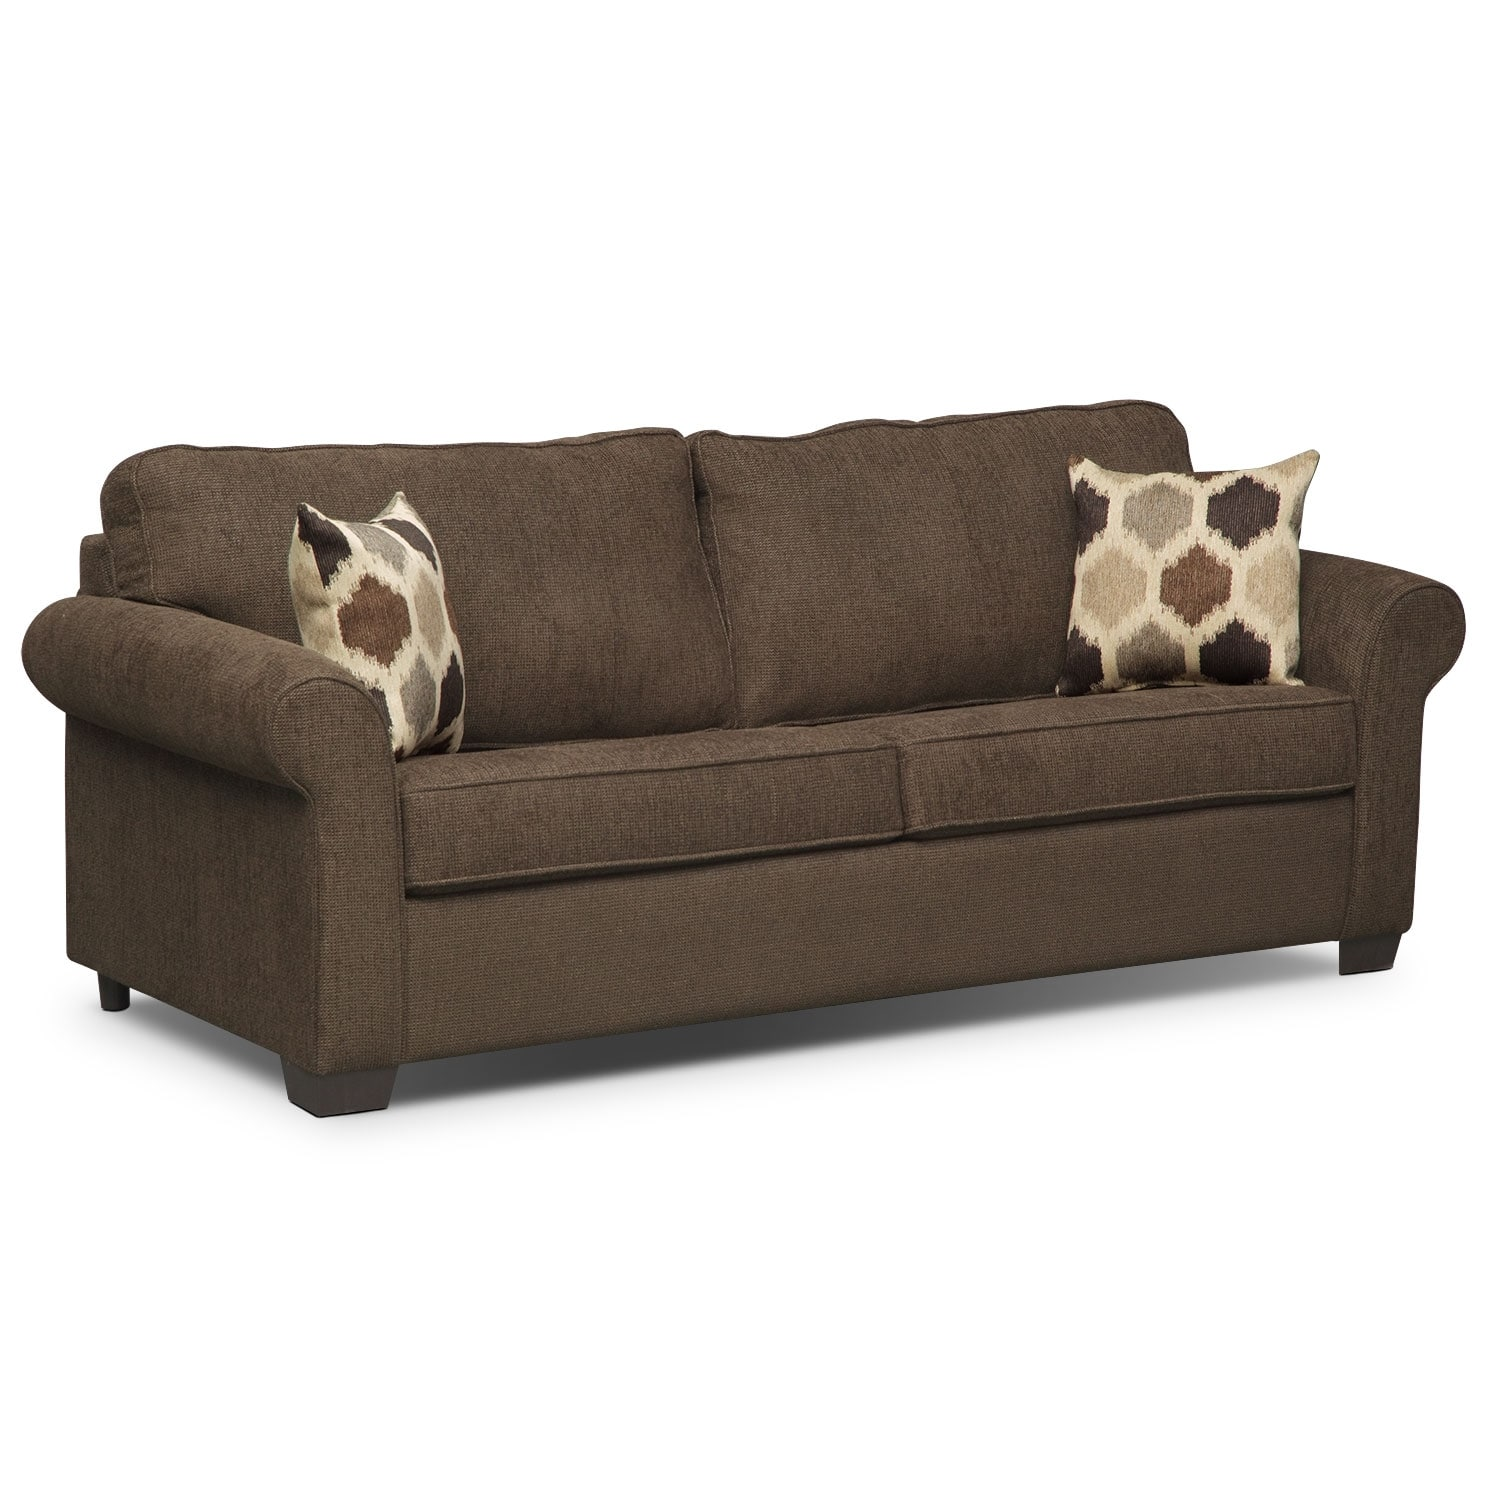 [Fletcher II Queen Innerspring Sleeper Sofa]